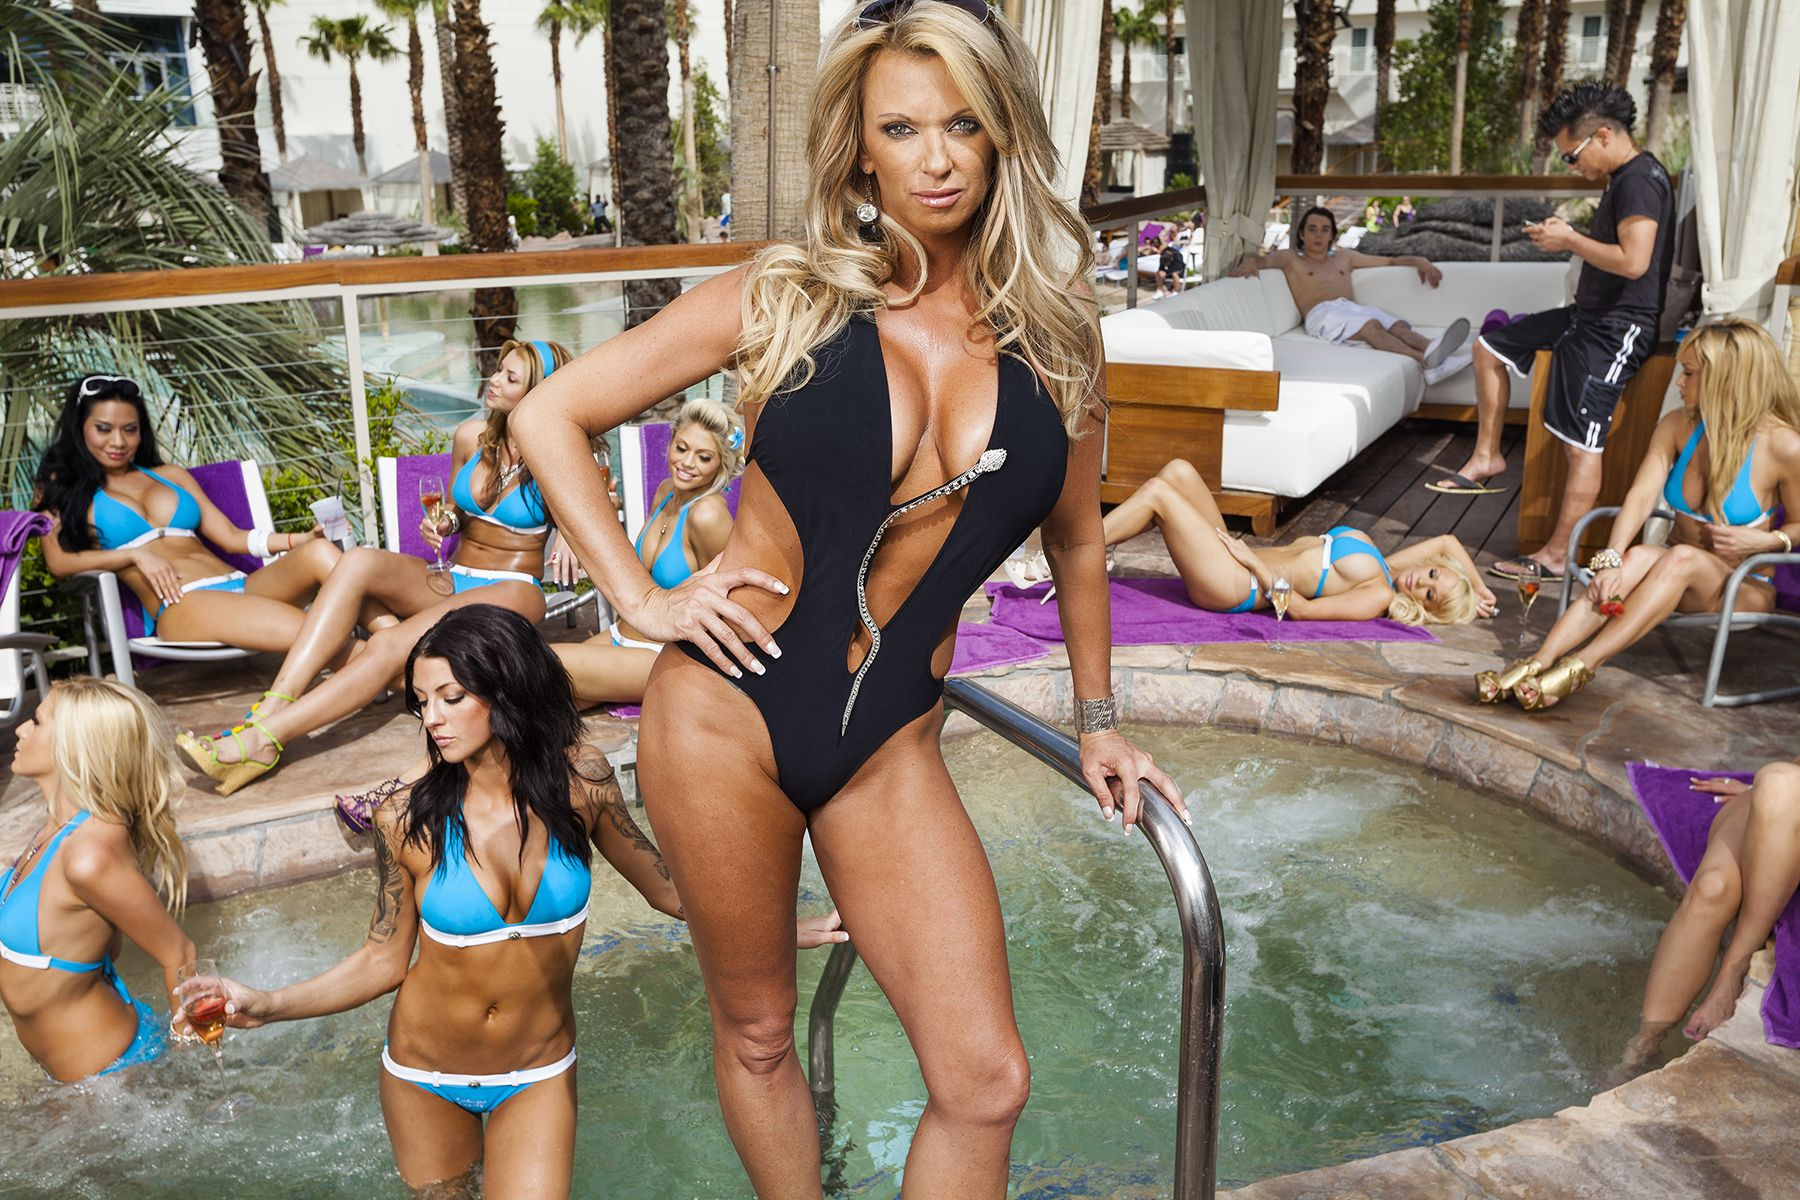 """VIP hostess Tiffany Masters, 38, with her Cabana Candy team at the Hard Rock Hotel and Casino, Las Vegas, 2010. Masters arranges access to Vegas nightclubs and attractions for her clients and employs young, attractive women she calls Arm Charms to provide them with """"rock star"""" treatment."""